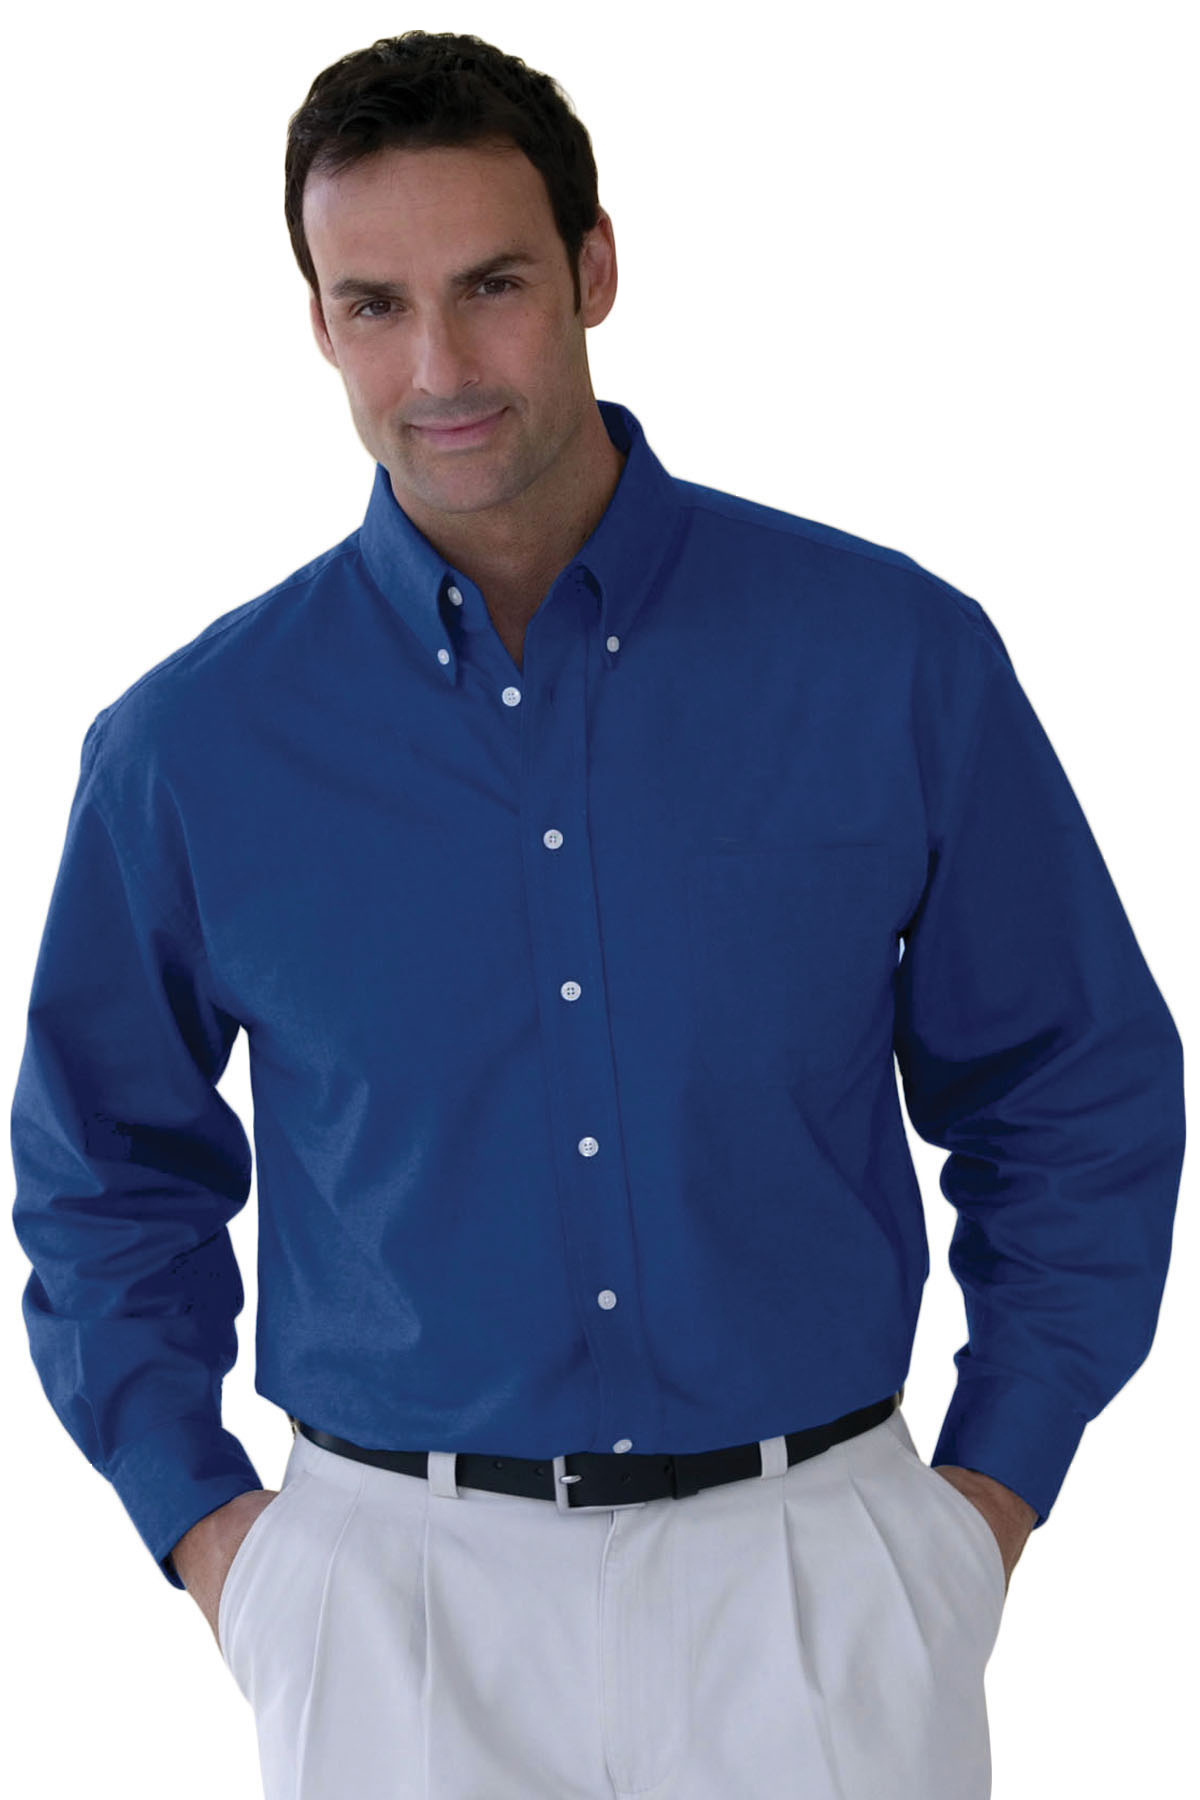 Velocity 1210 - Repel & Release Oxford Shirt